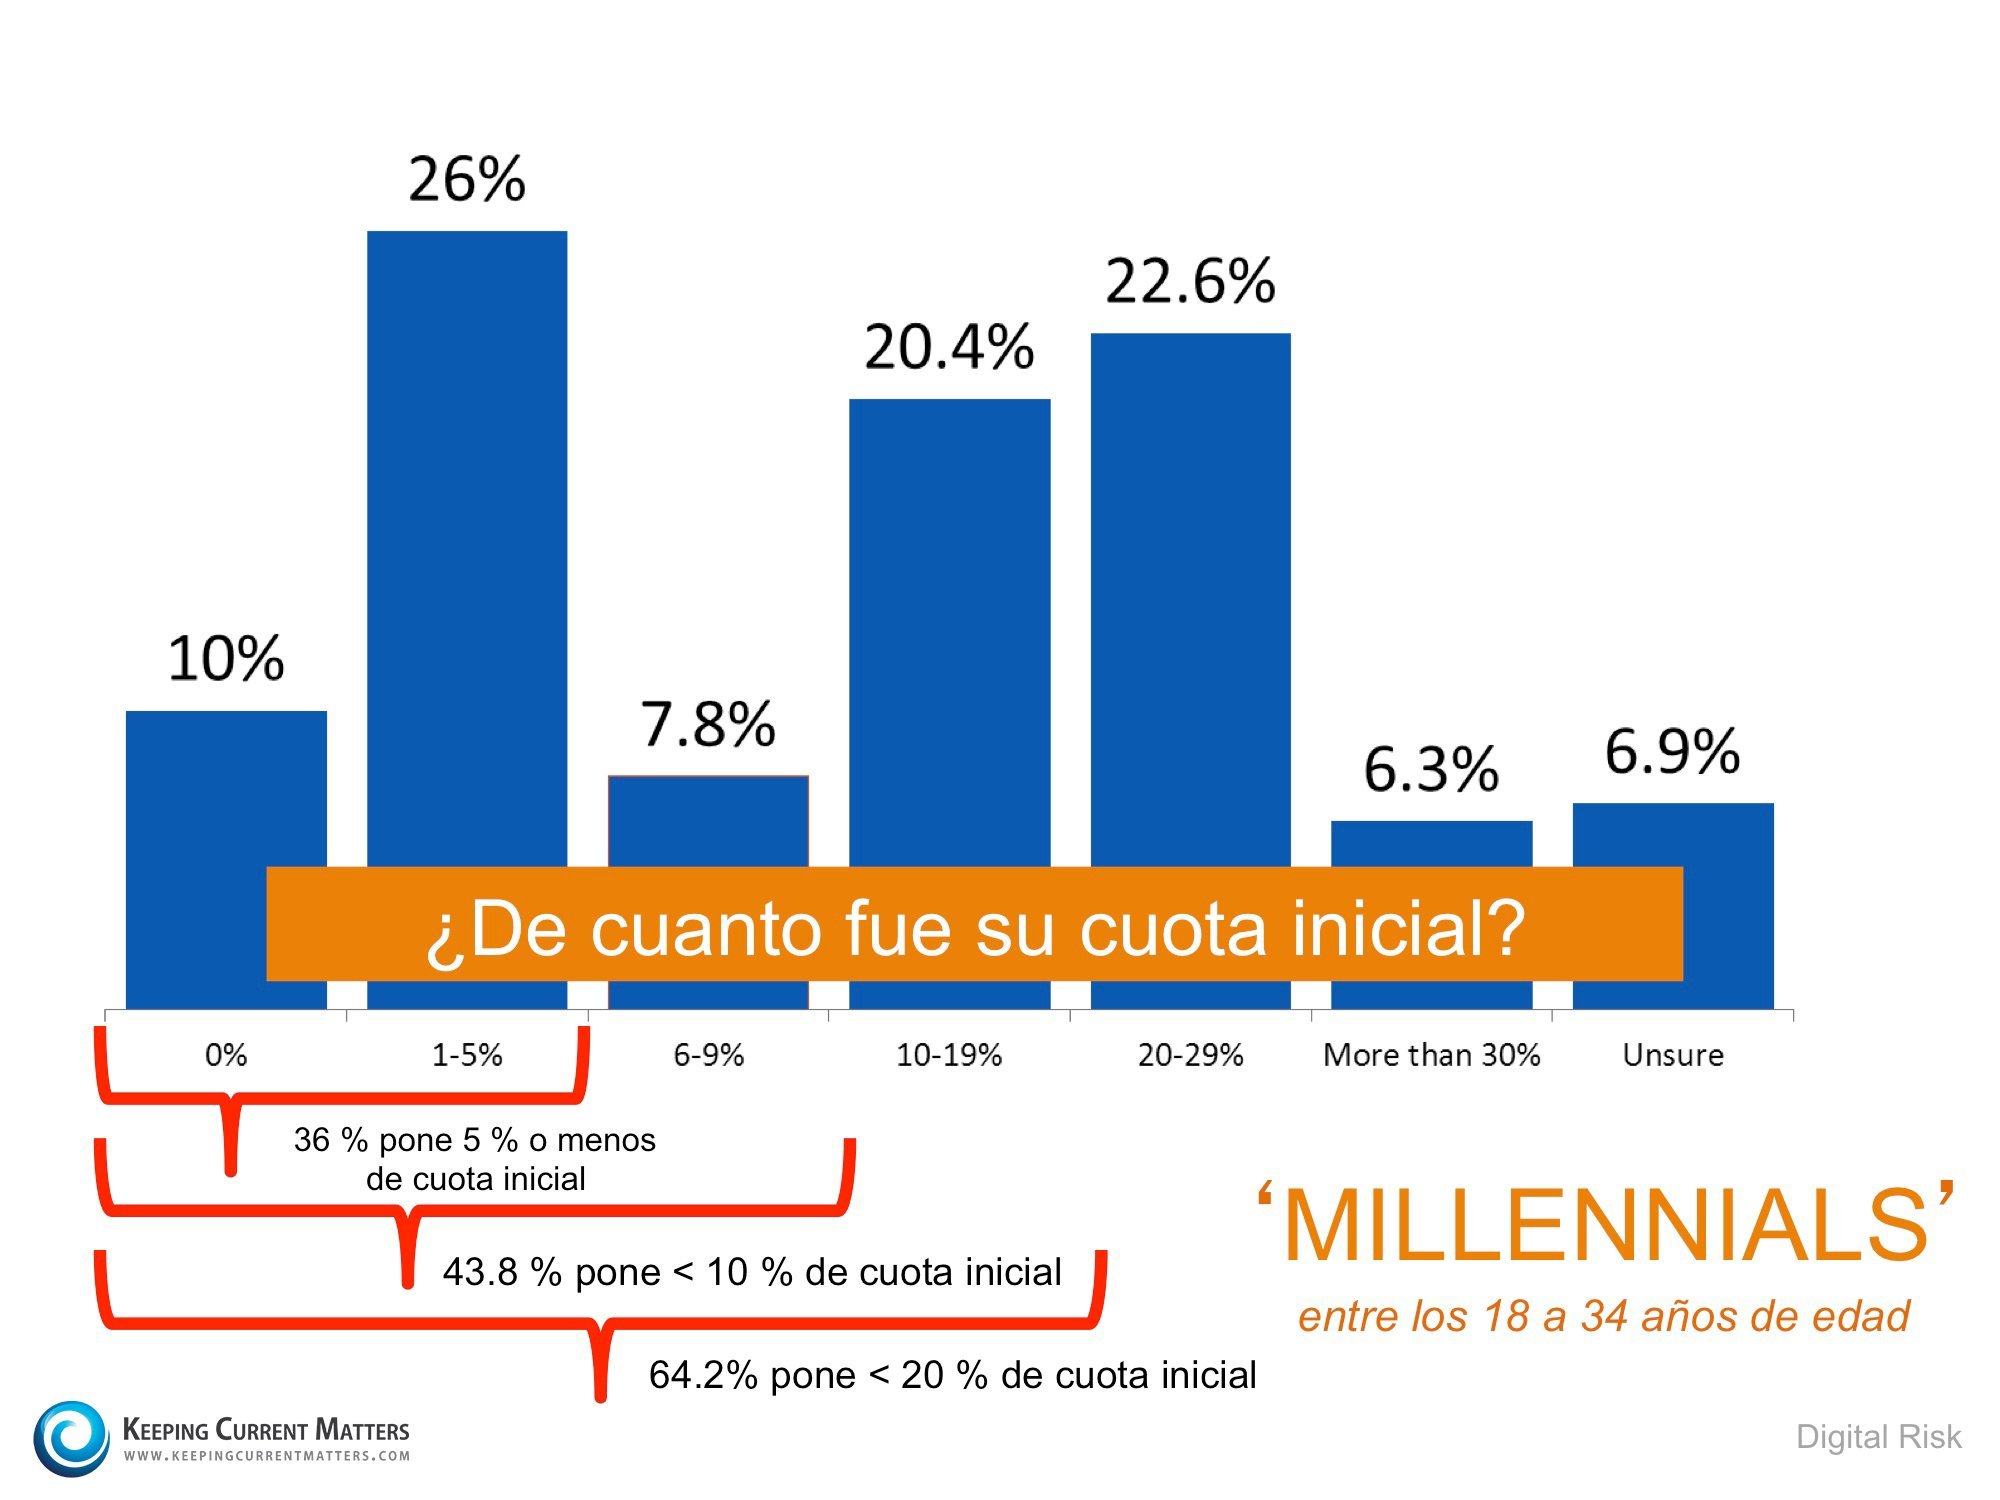 Millennials cuota inicial | Keeping Current Matters